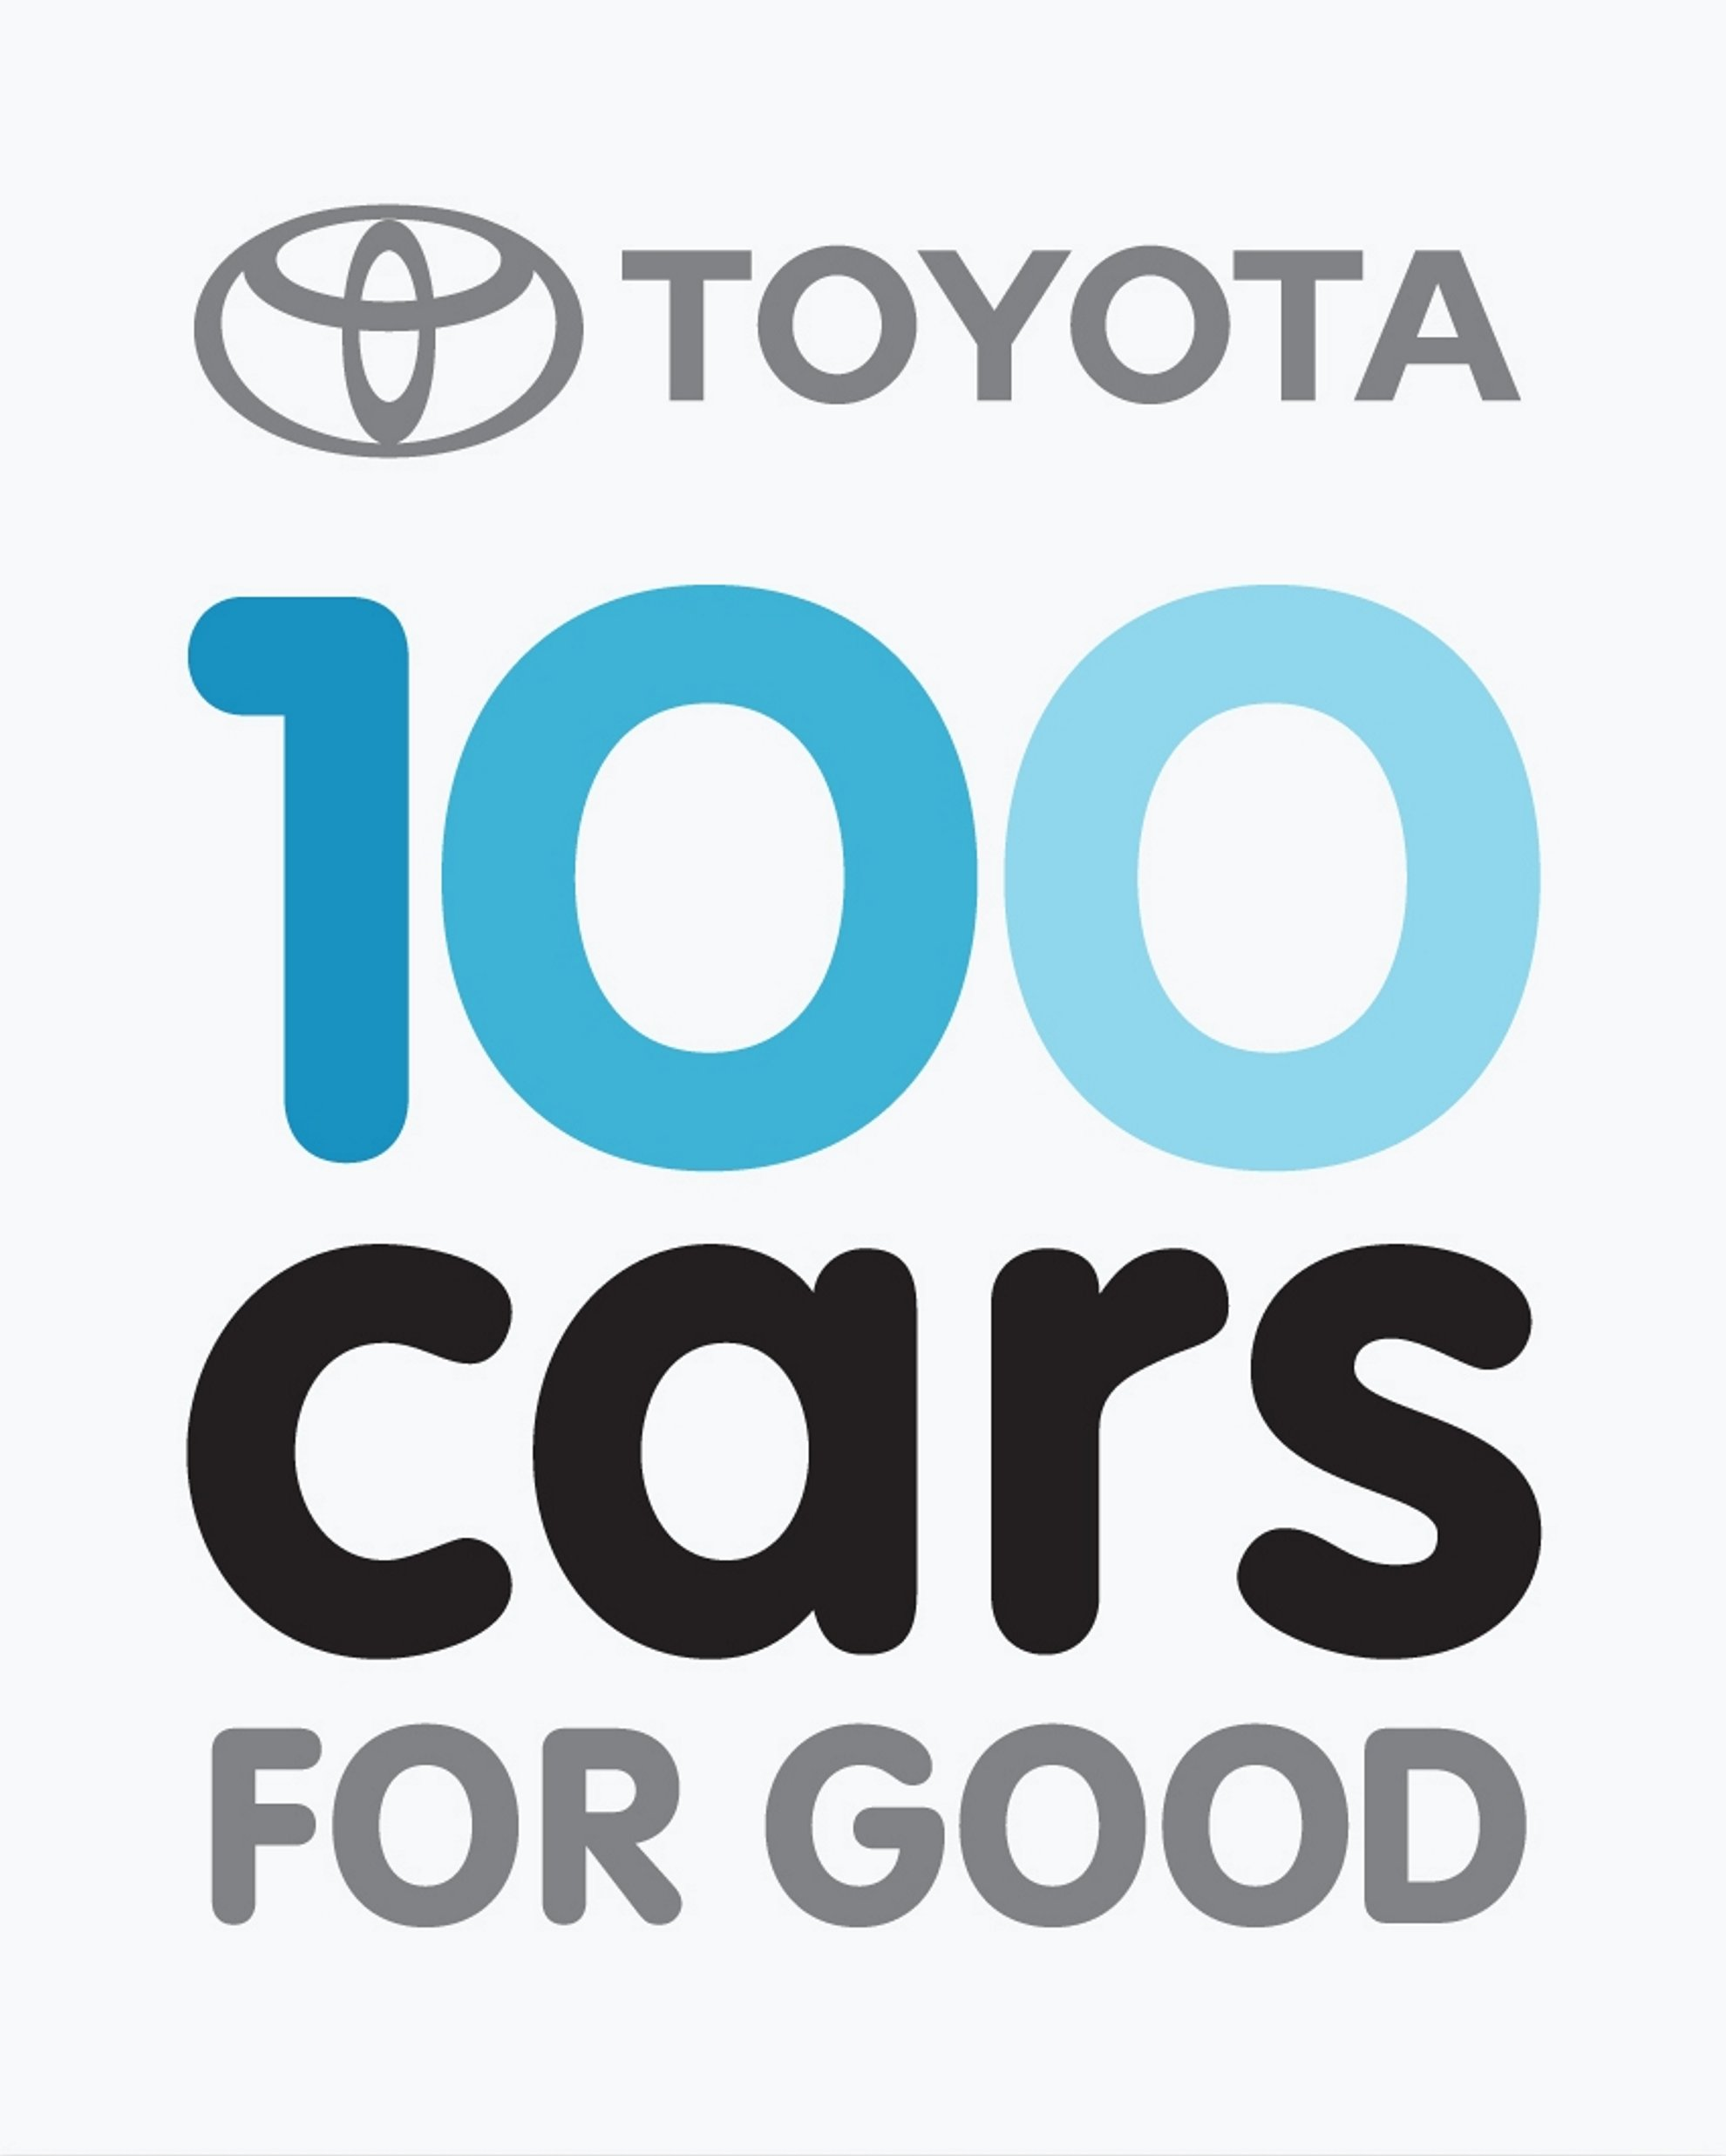 Toyota 100 Car for Good